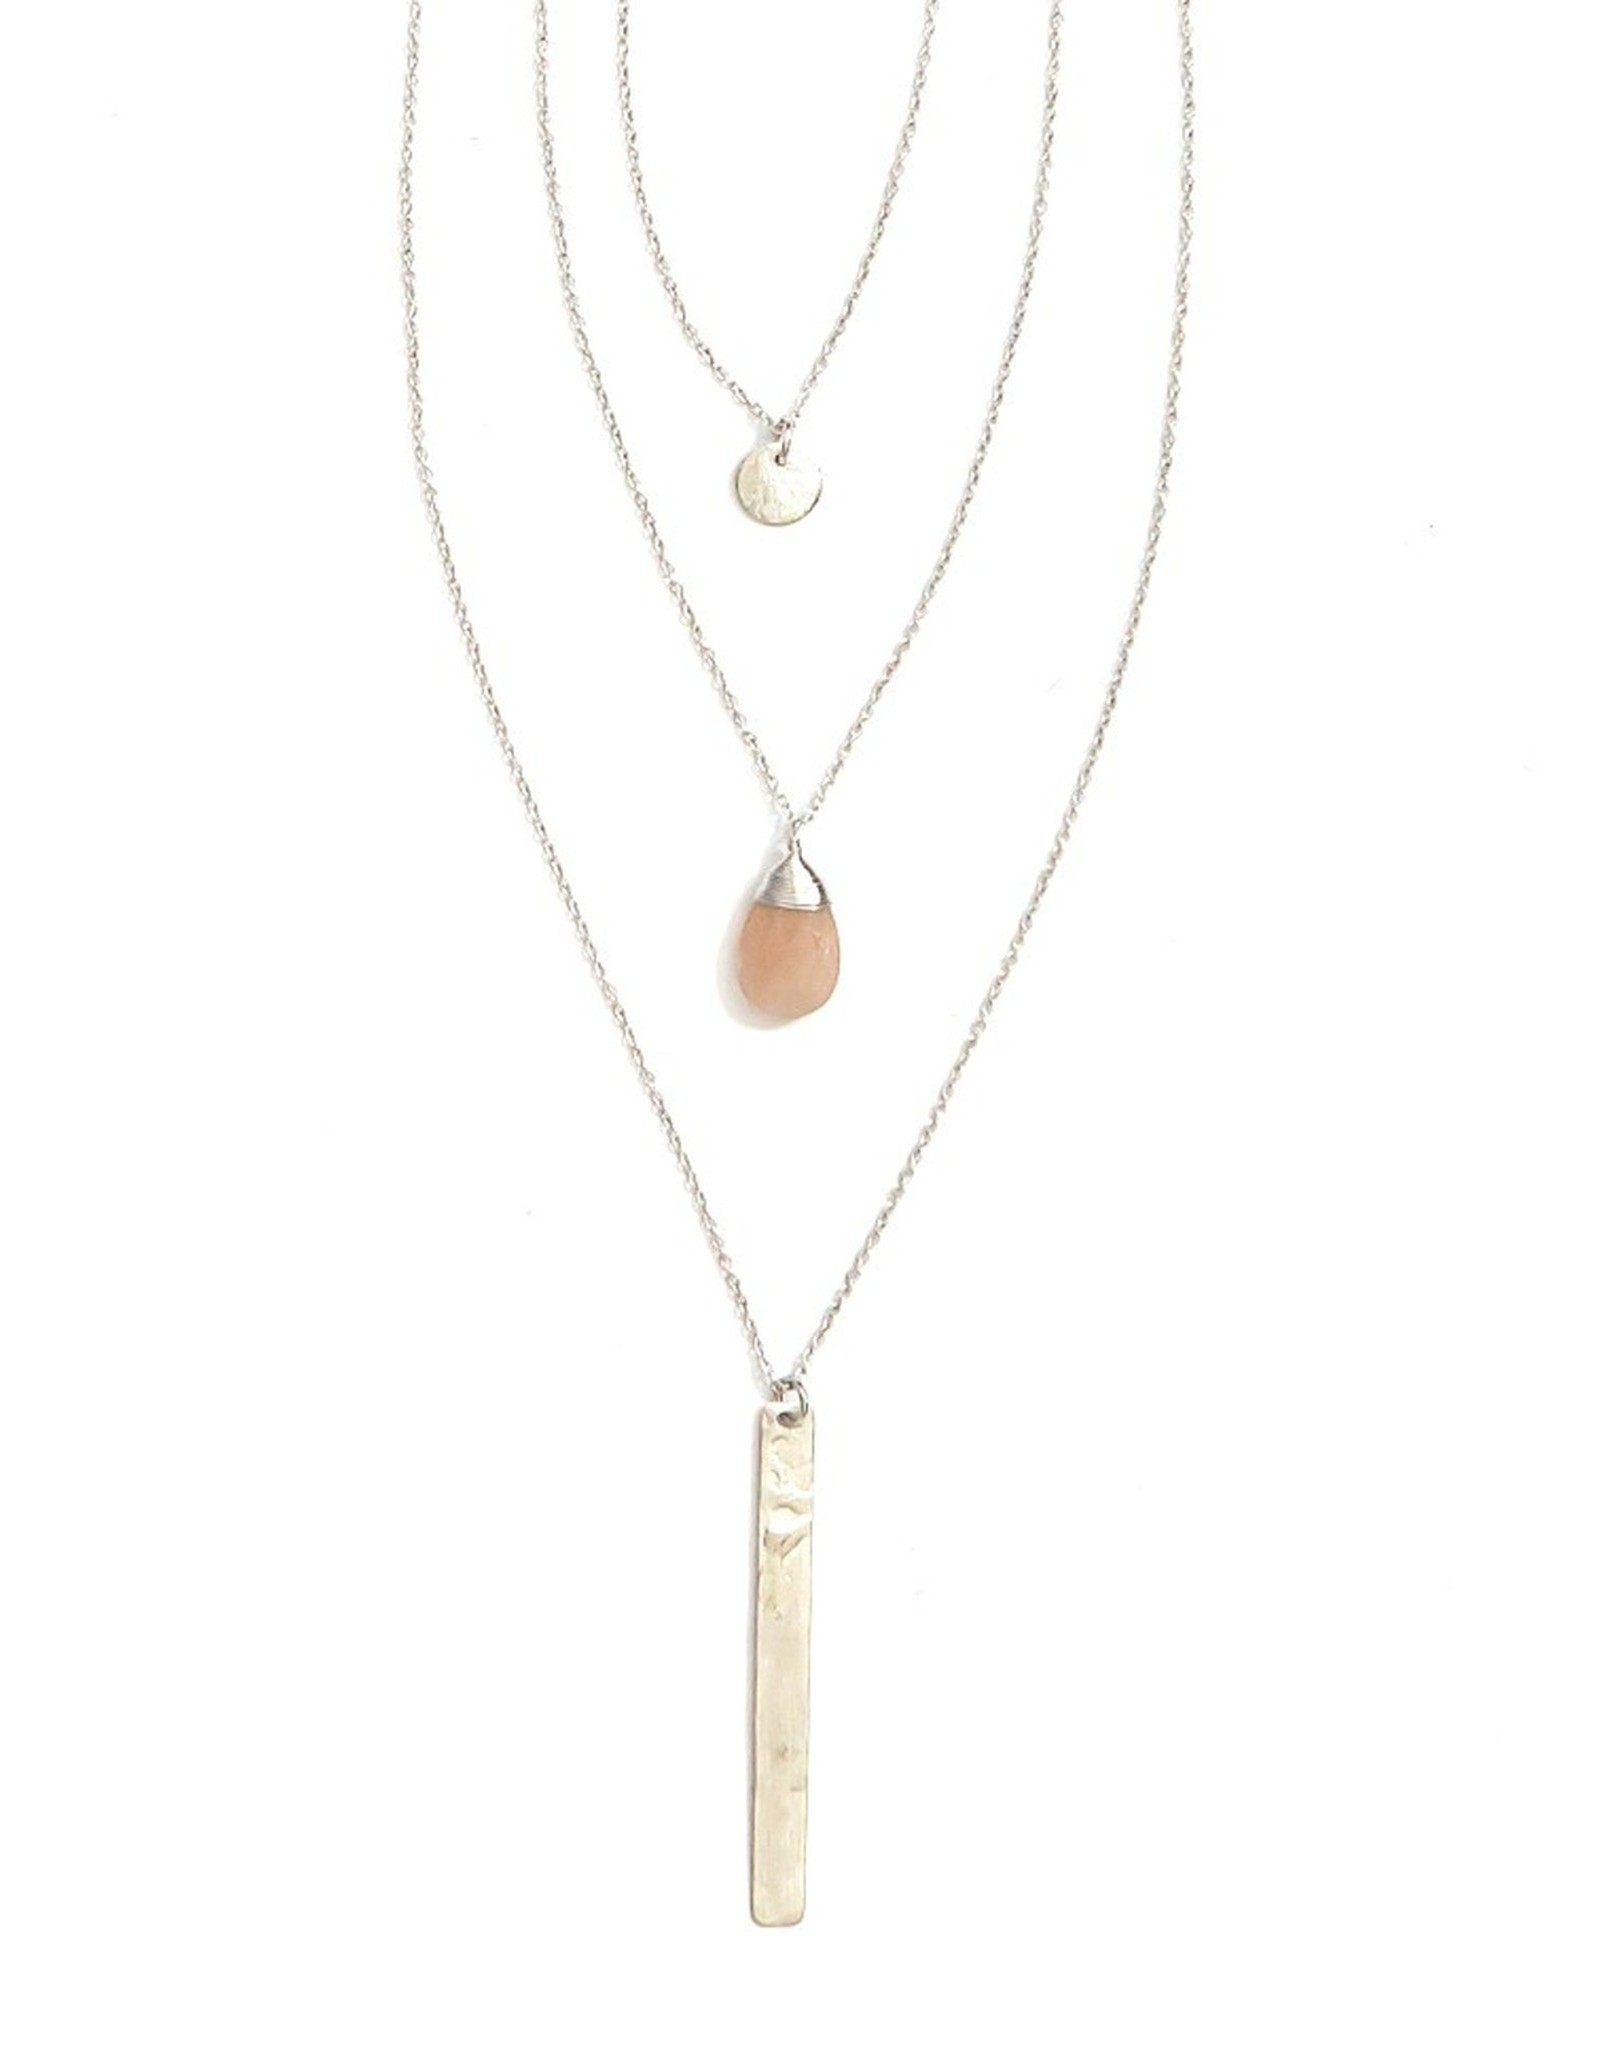 3 Necklaces in One, CAN BE SEPARATED